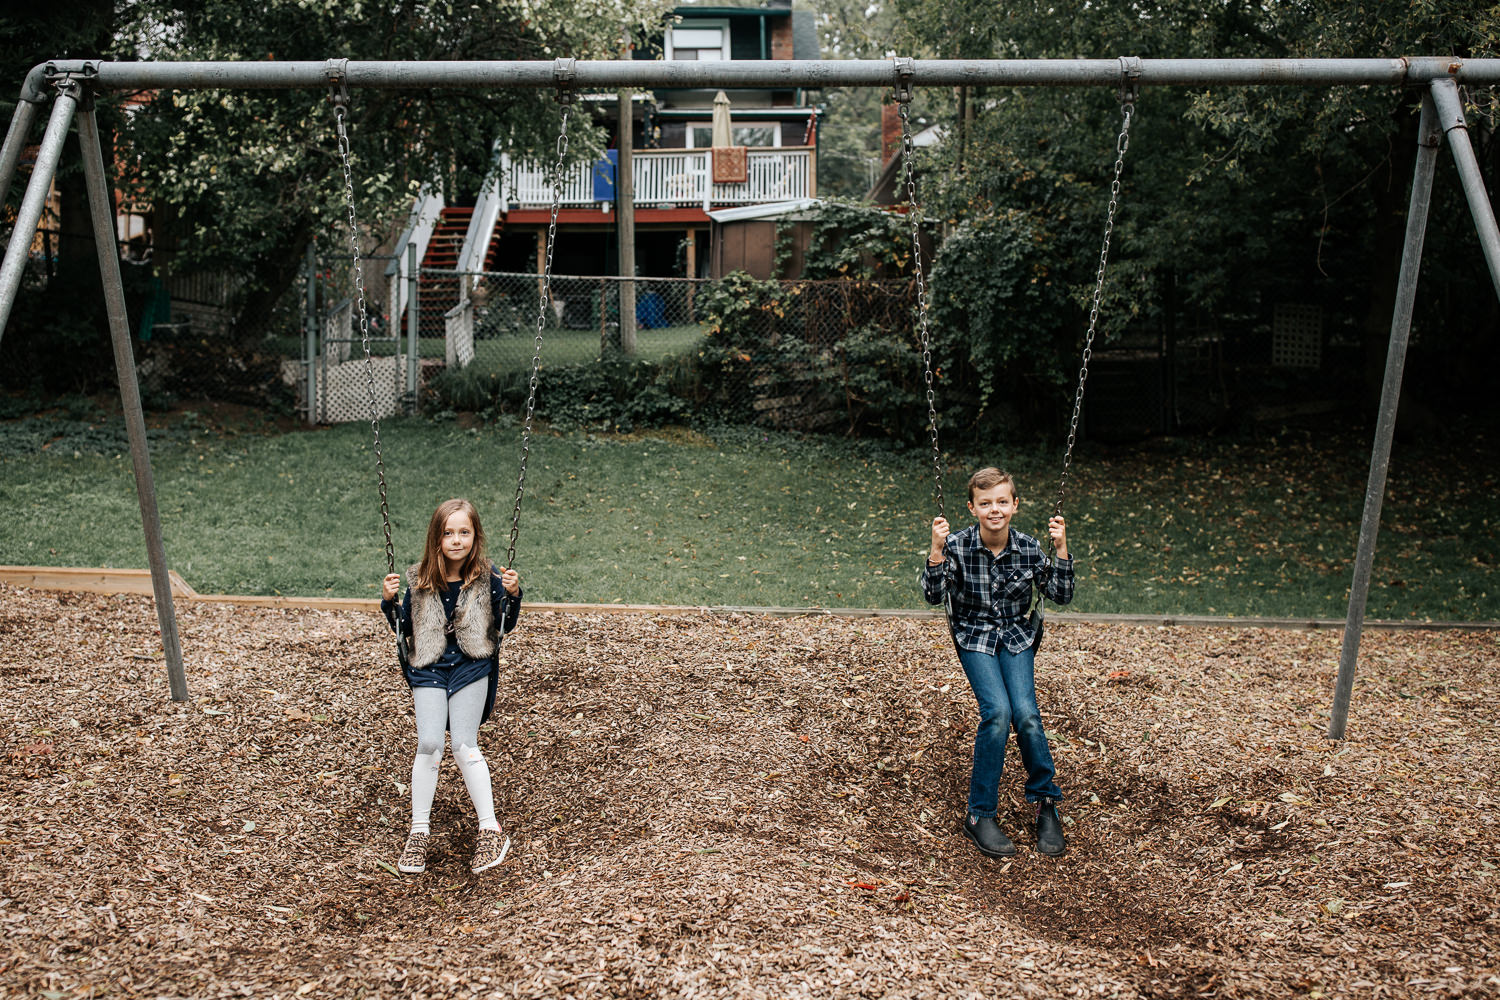 7 year old girl and 9 year old boy sitting still on swing set at city park, both looking  and smiling at the camera -  Stouffville In-Home Photos